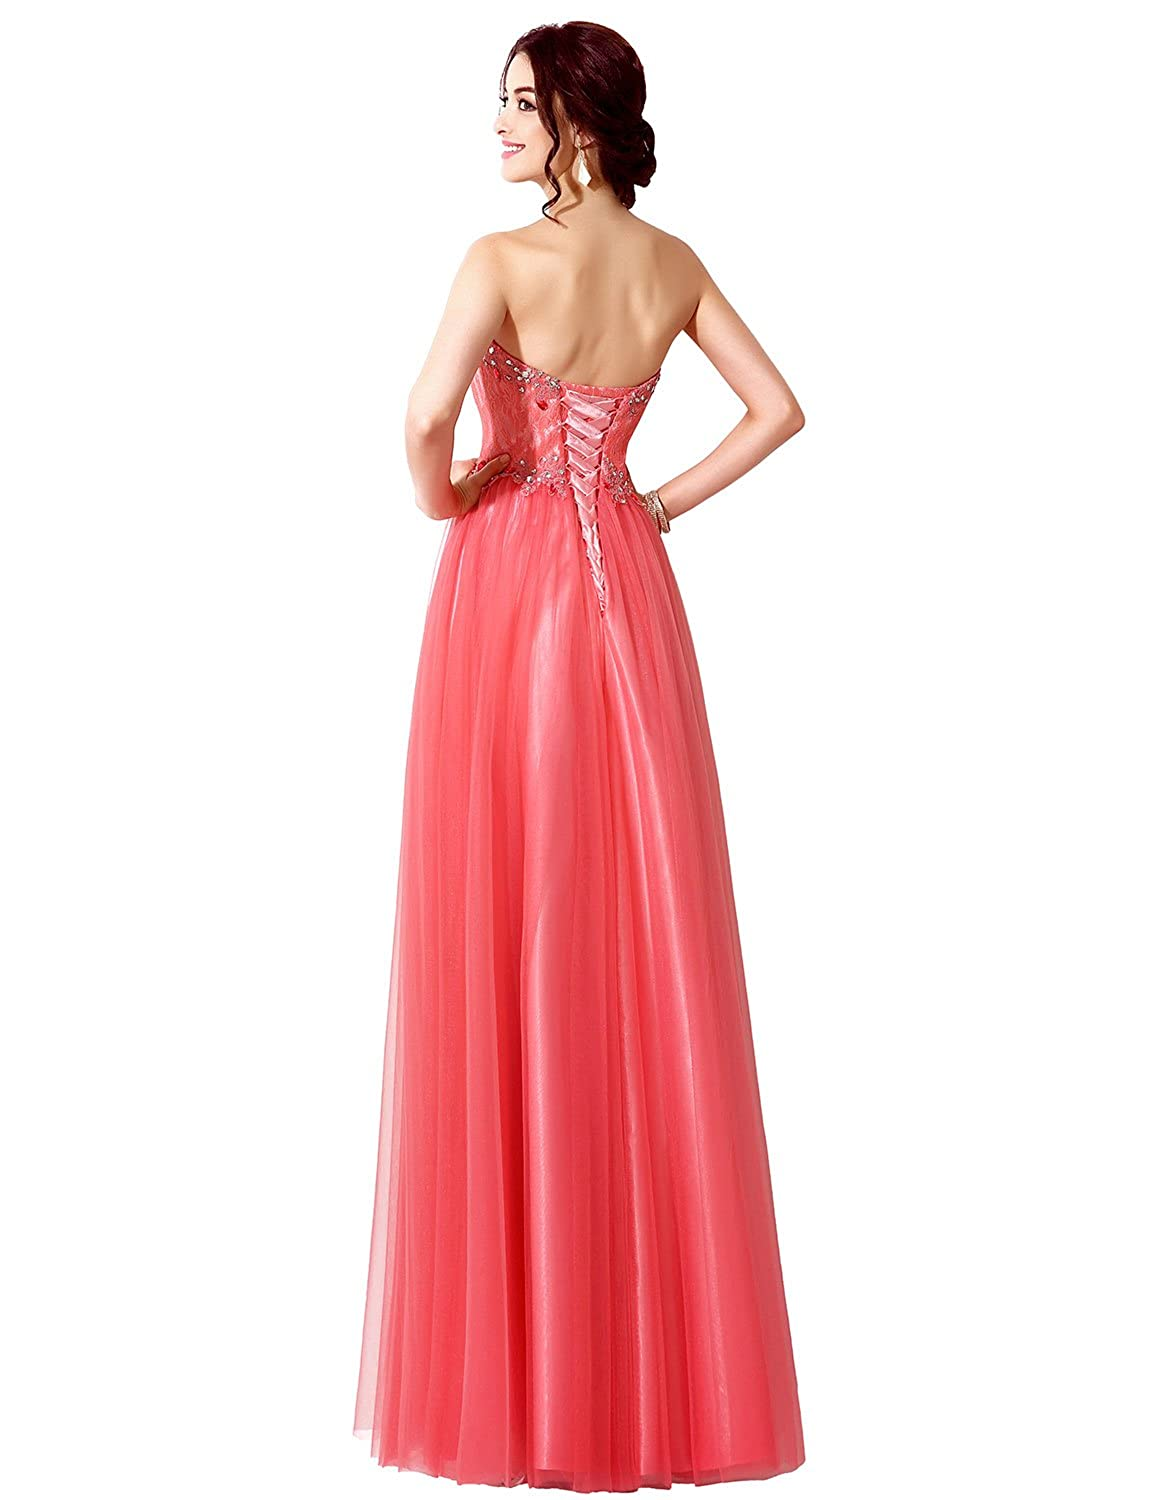 Sarahbridal Women Ball Gowns Strapless Long Prom Dress Tulle Wedding Party Dresses with Sequins for Teenagers SSD085: Amazon.co.uk: Clothing